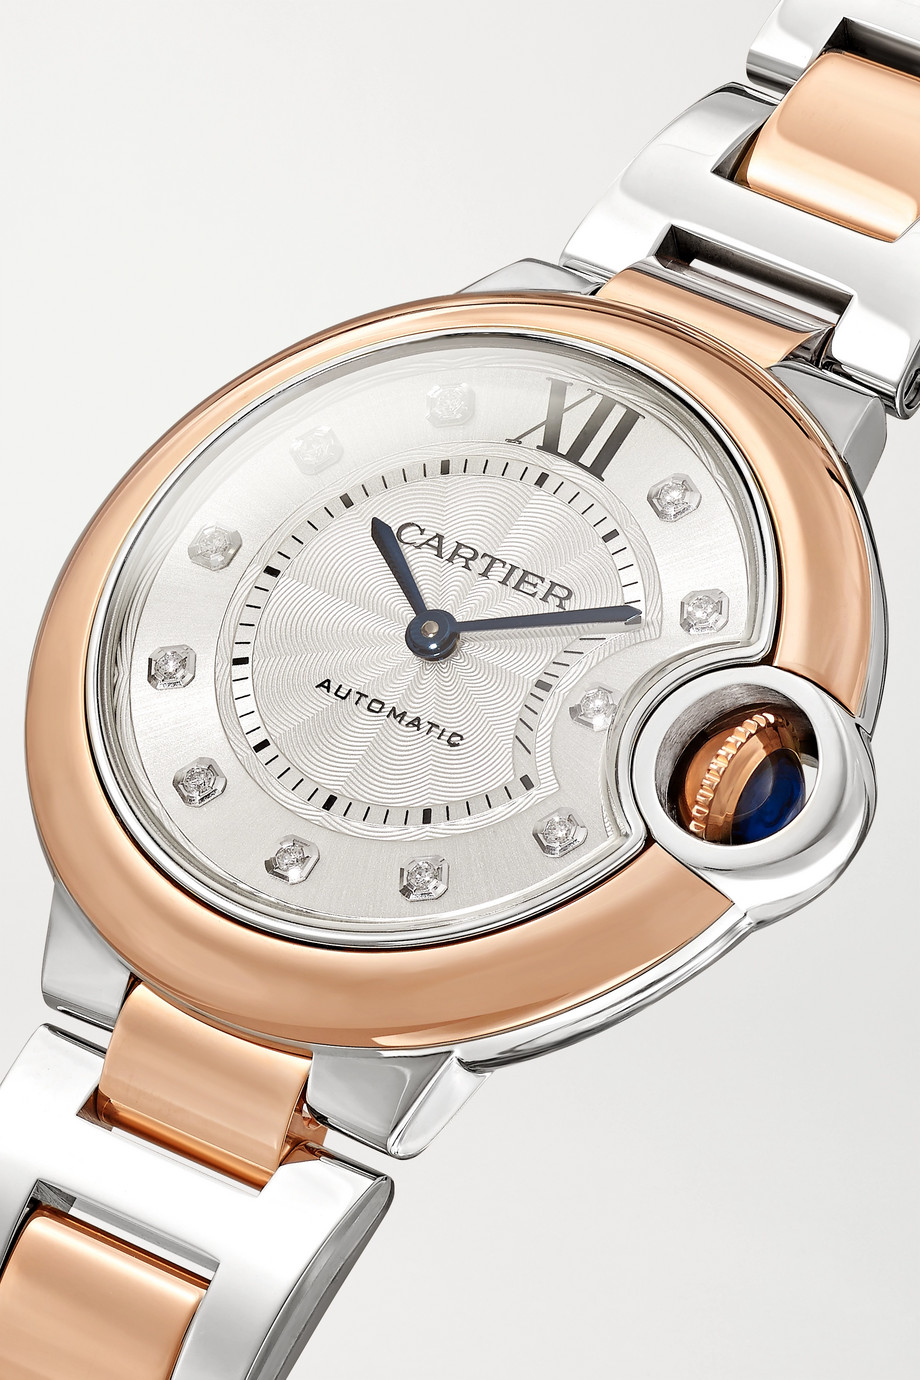 Cartier Ballon Bleu de Cartier Automatic 33mm 18-karat rose gold, stainless steel and diamond watch